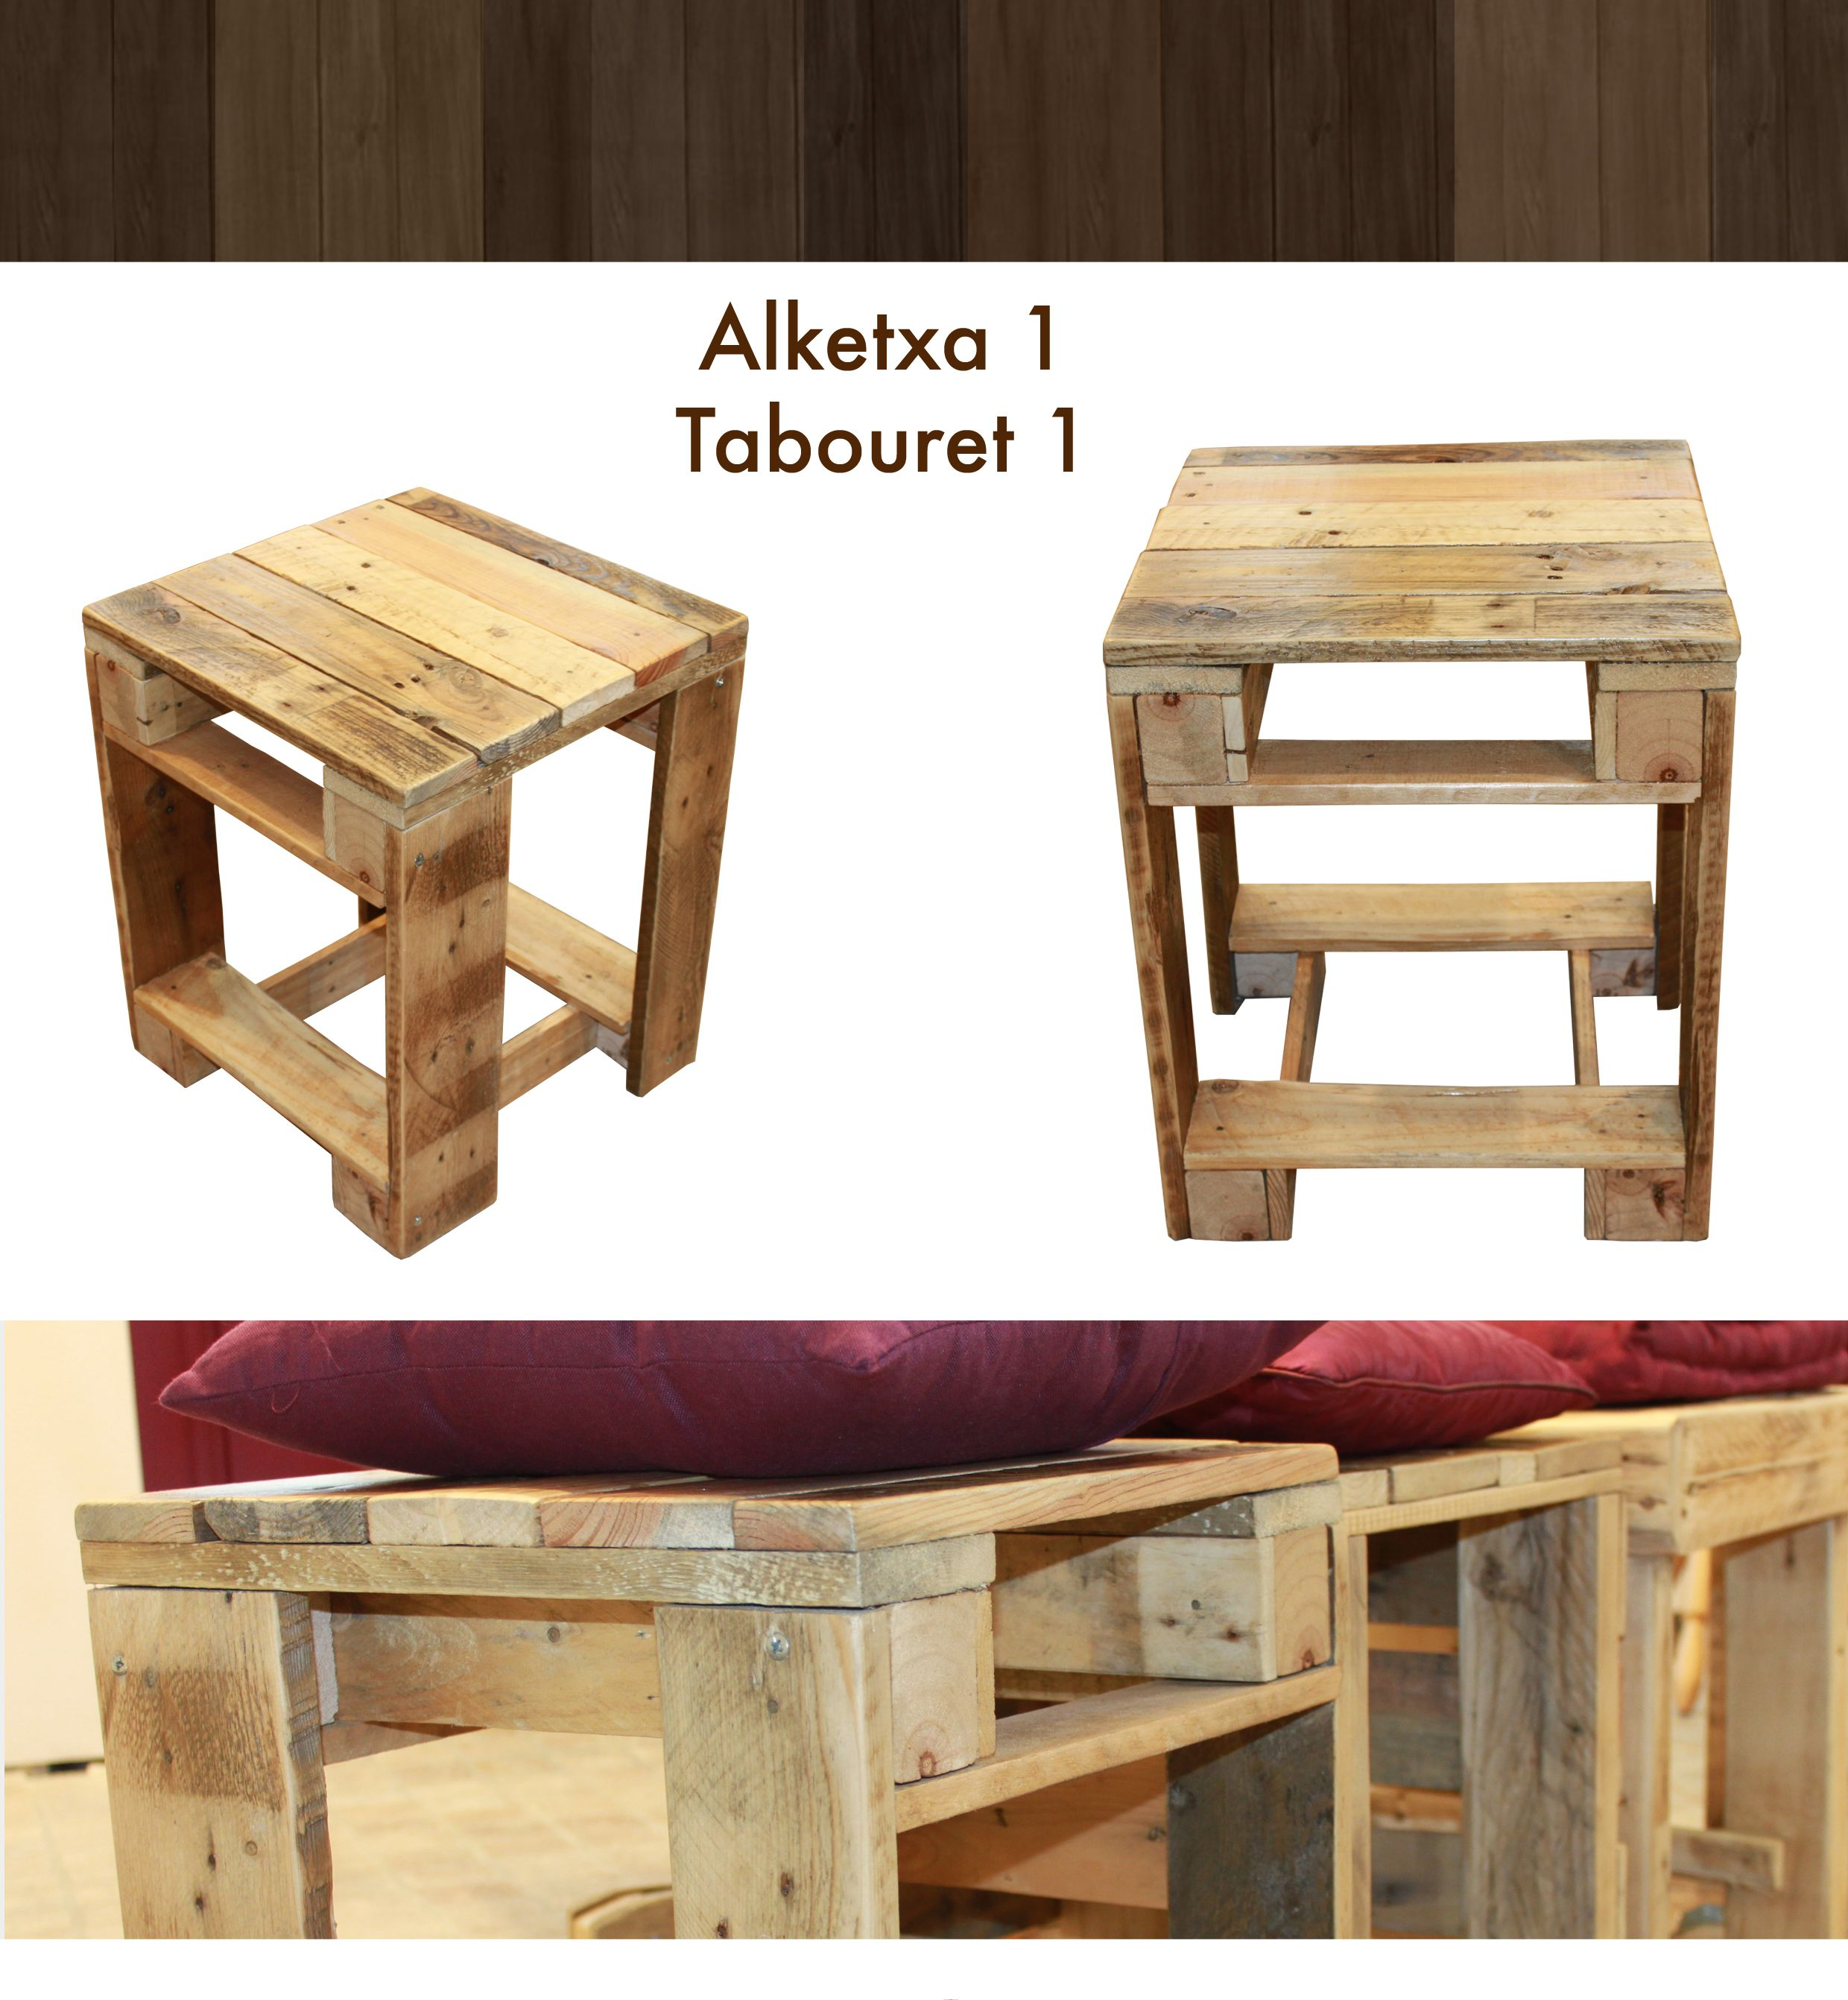 petit tabouret en bois de palette les meubles en palette de martxuka pinterest petit. Black Bedroom Furniture Sets. Home Design Ideas